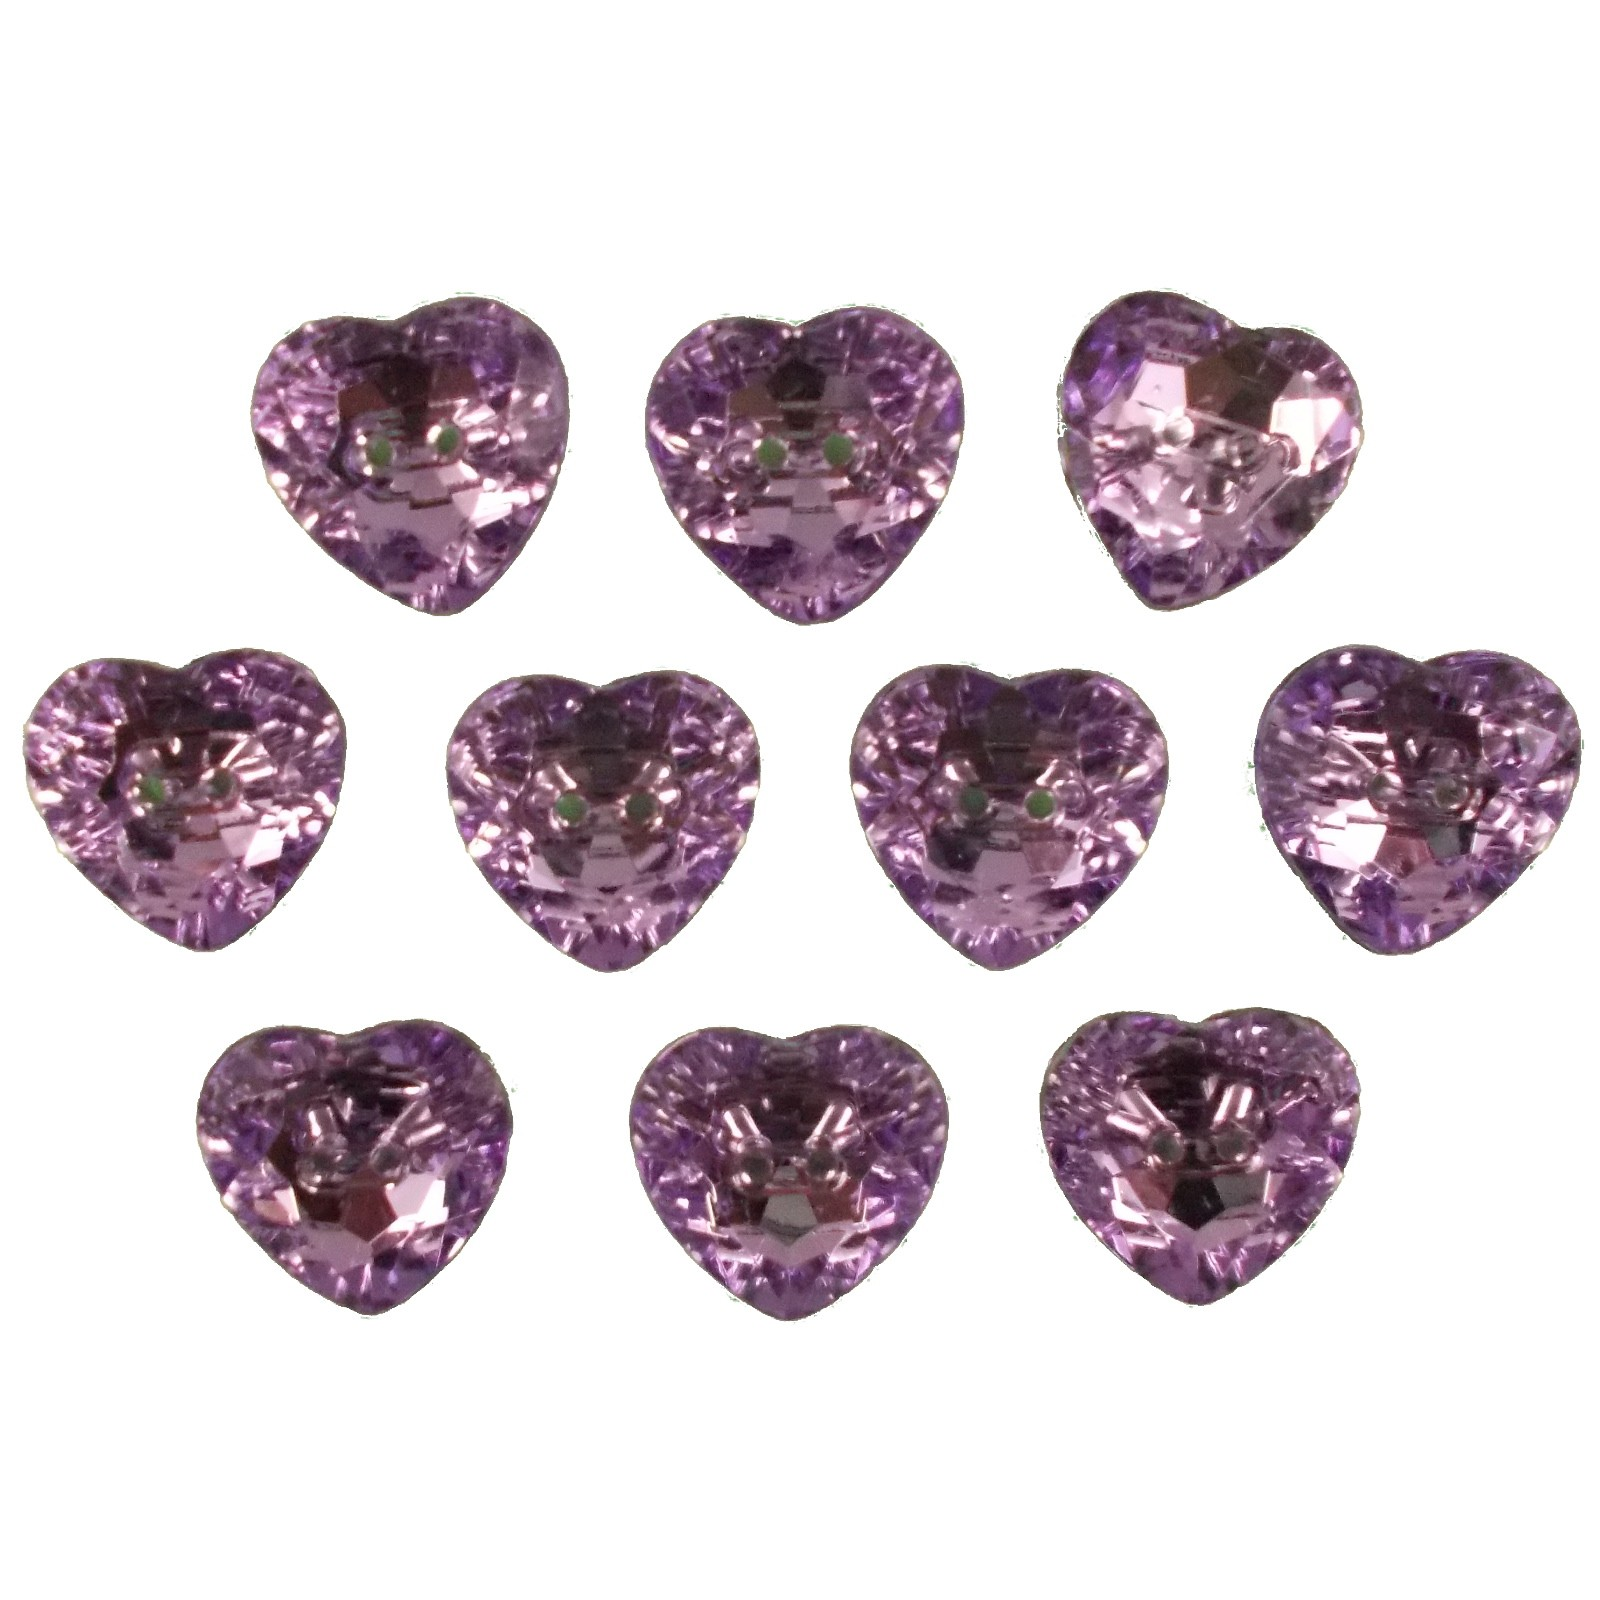 Acrylic Crystal Effect Heart Shape Buttons 28mm Lilac Pack of 10